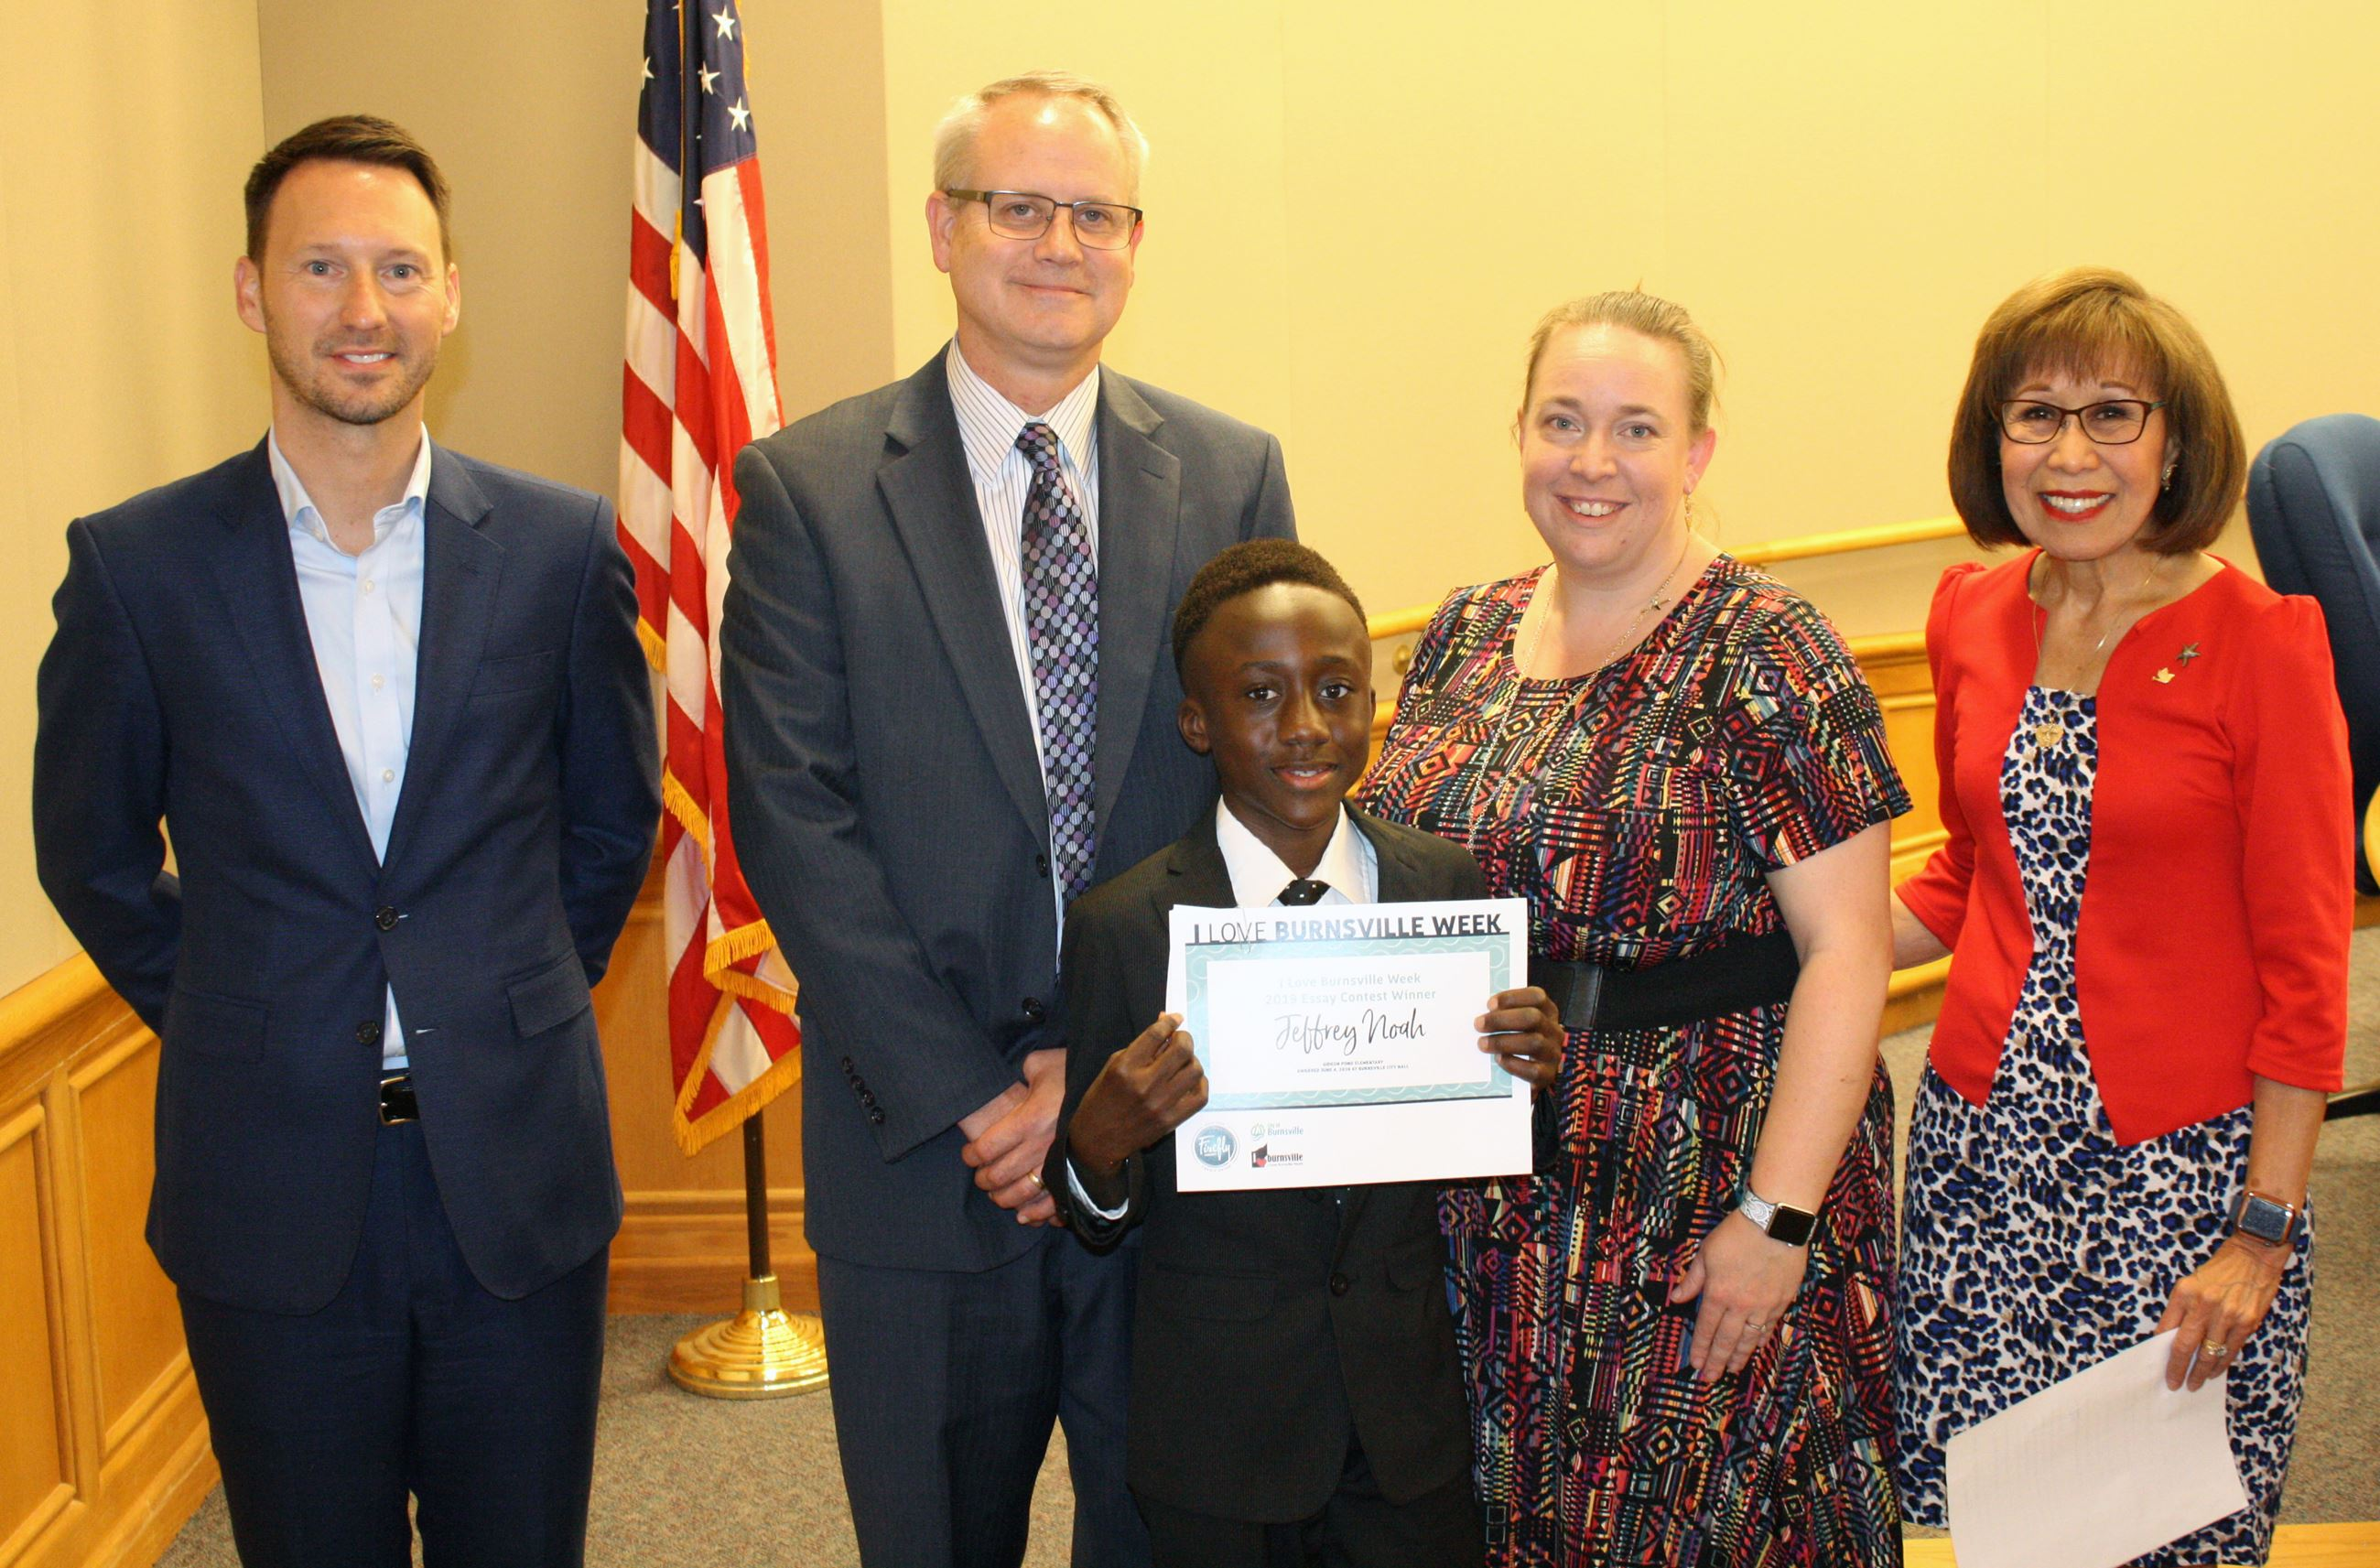 Essay Contest Winner Jeffrey, With Mayor and Firefly Credit Union